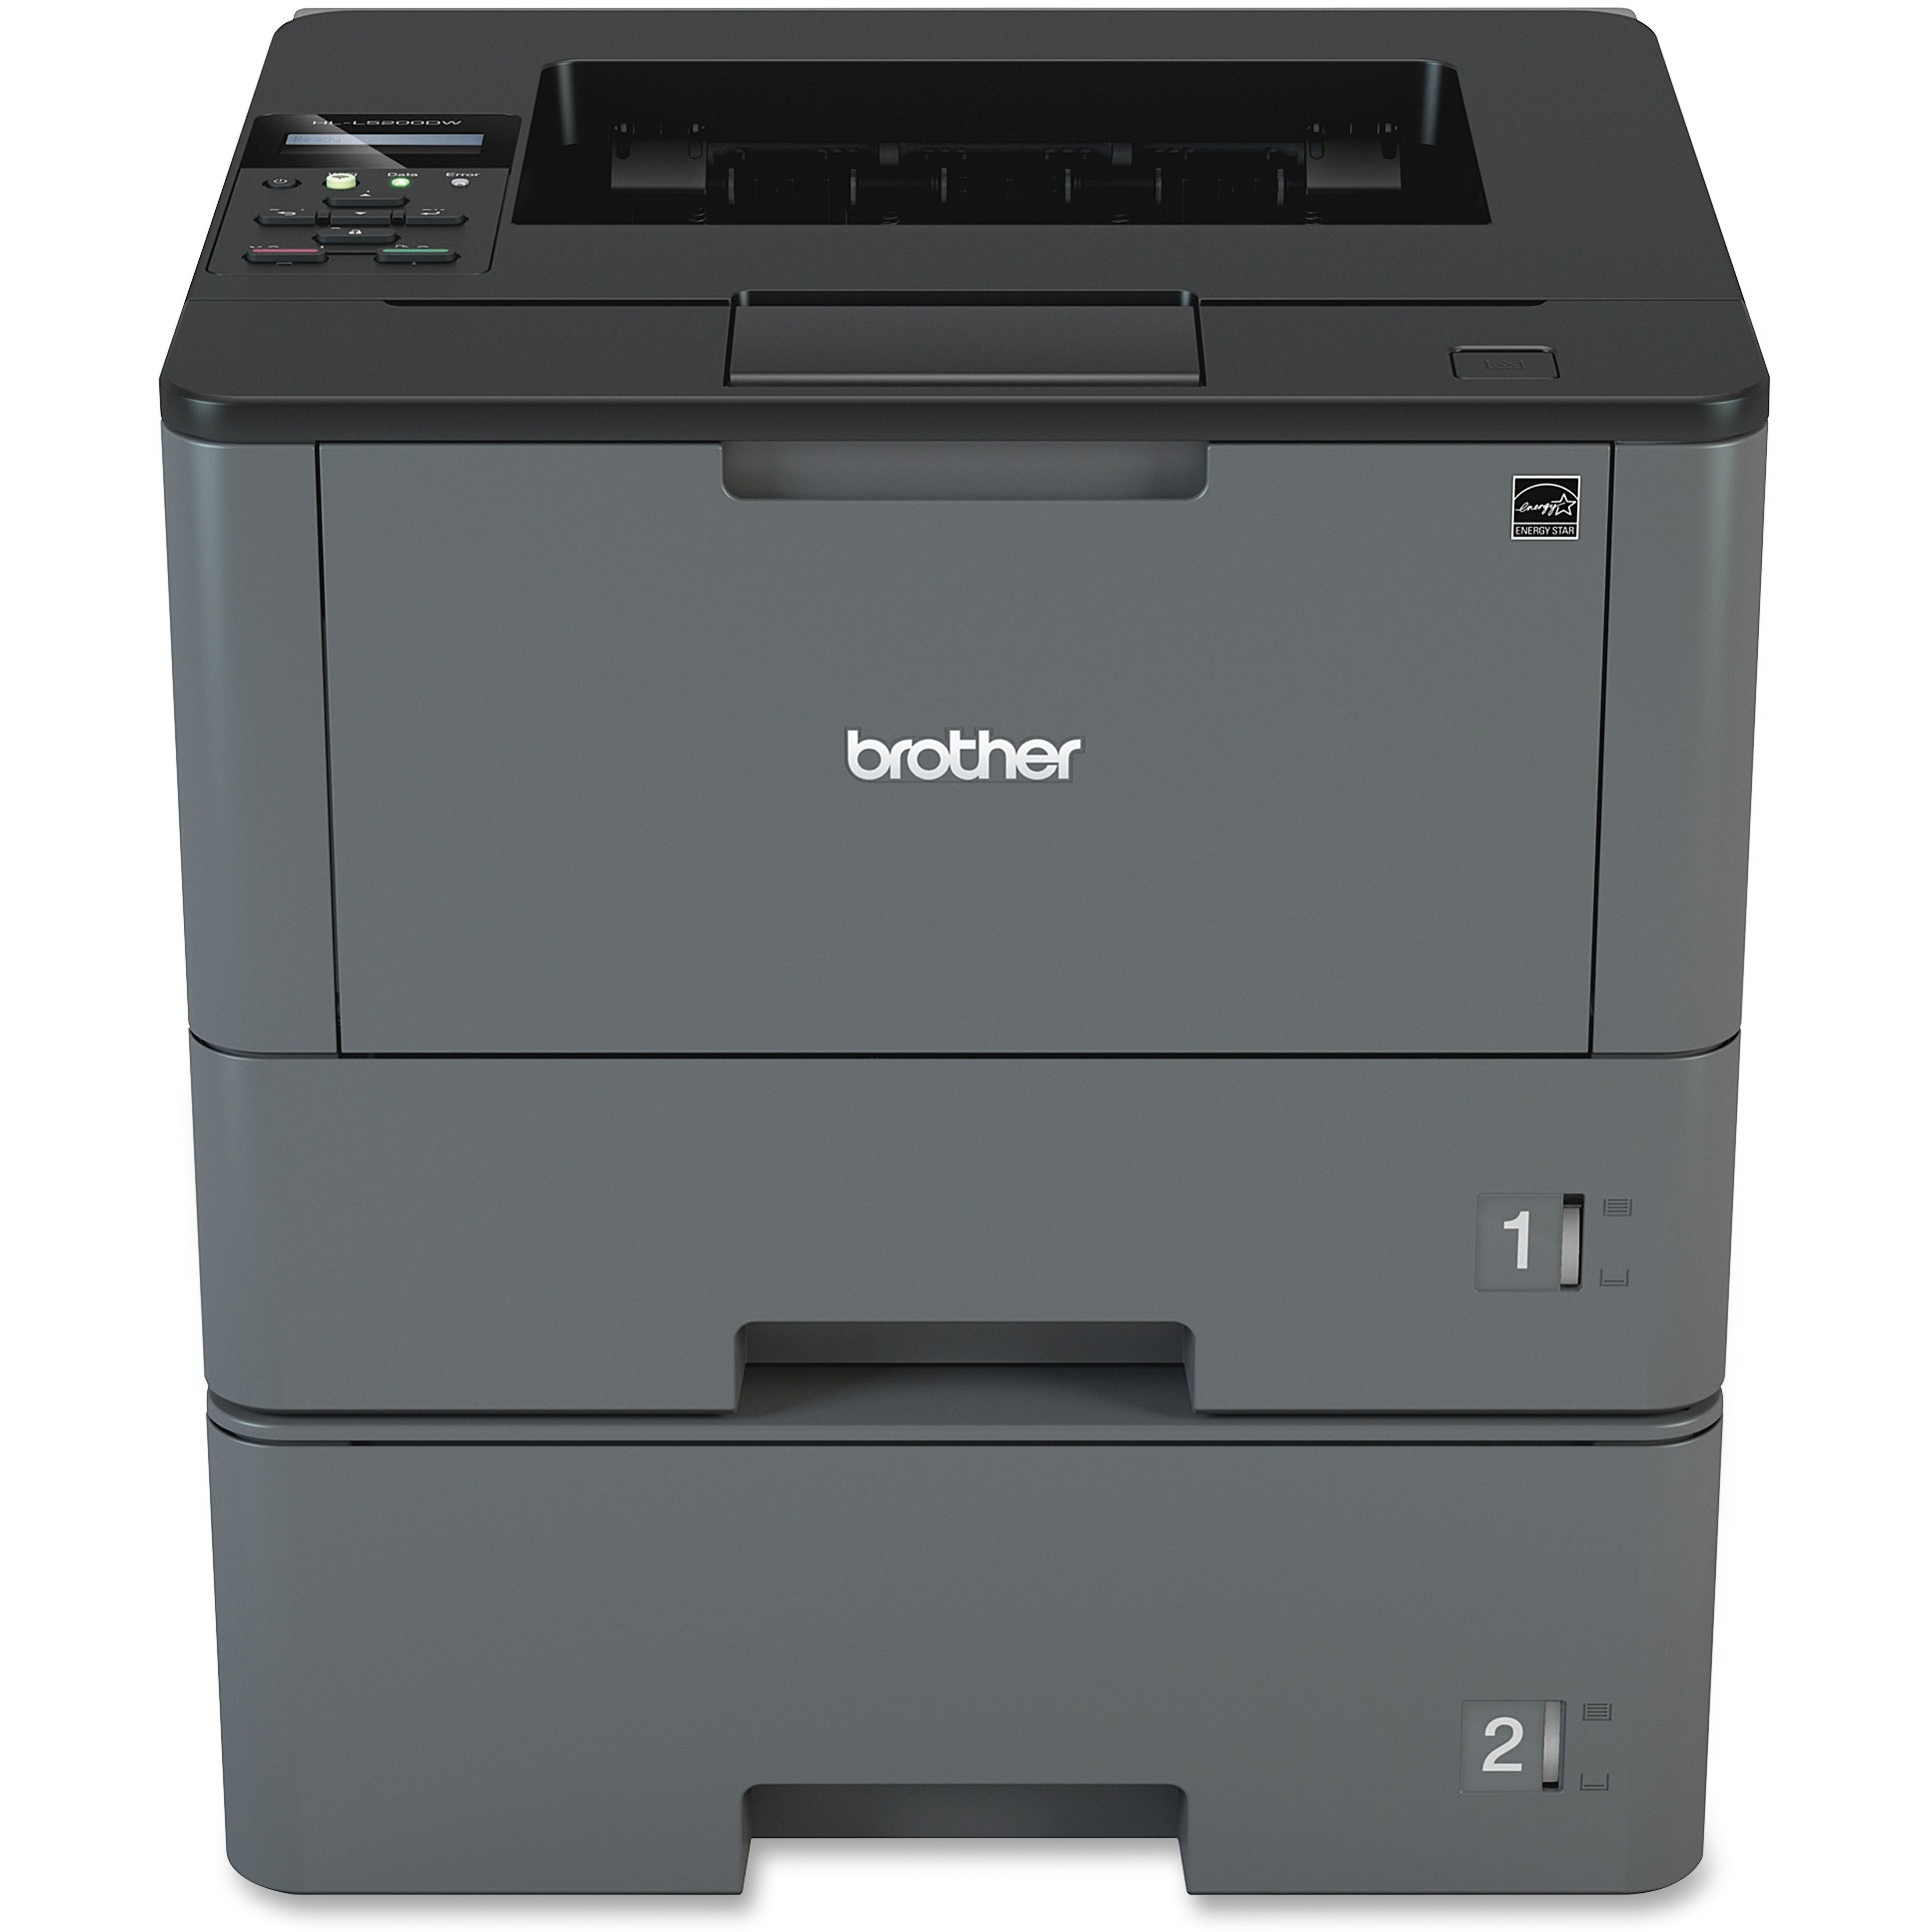 Brother HL-L5200DWT Business Laser Printer with Wireless Networking, Duplex Printing